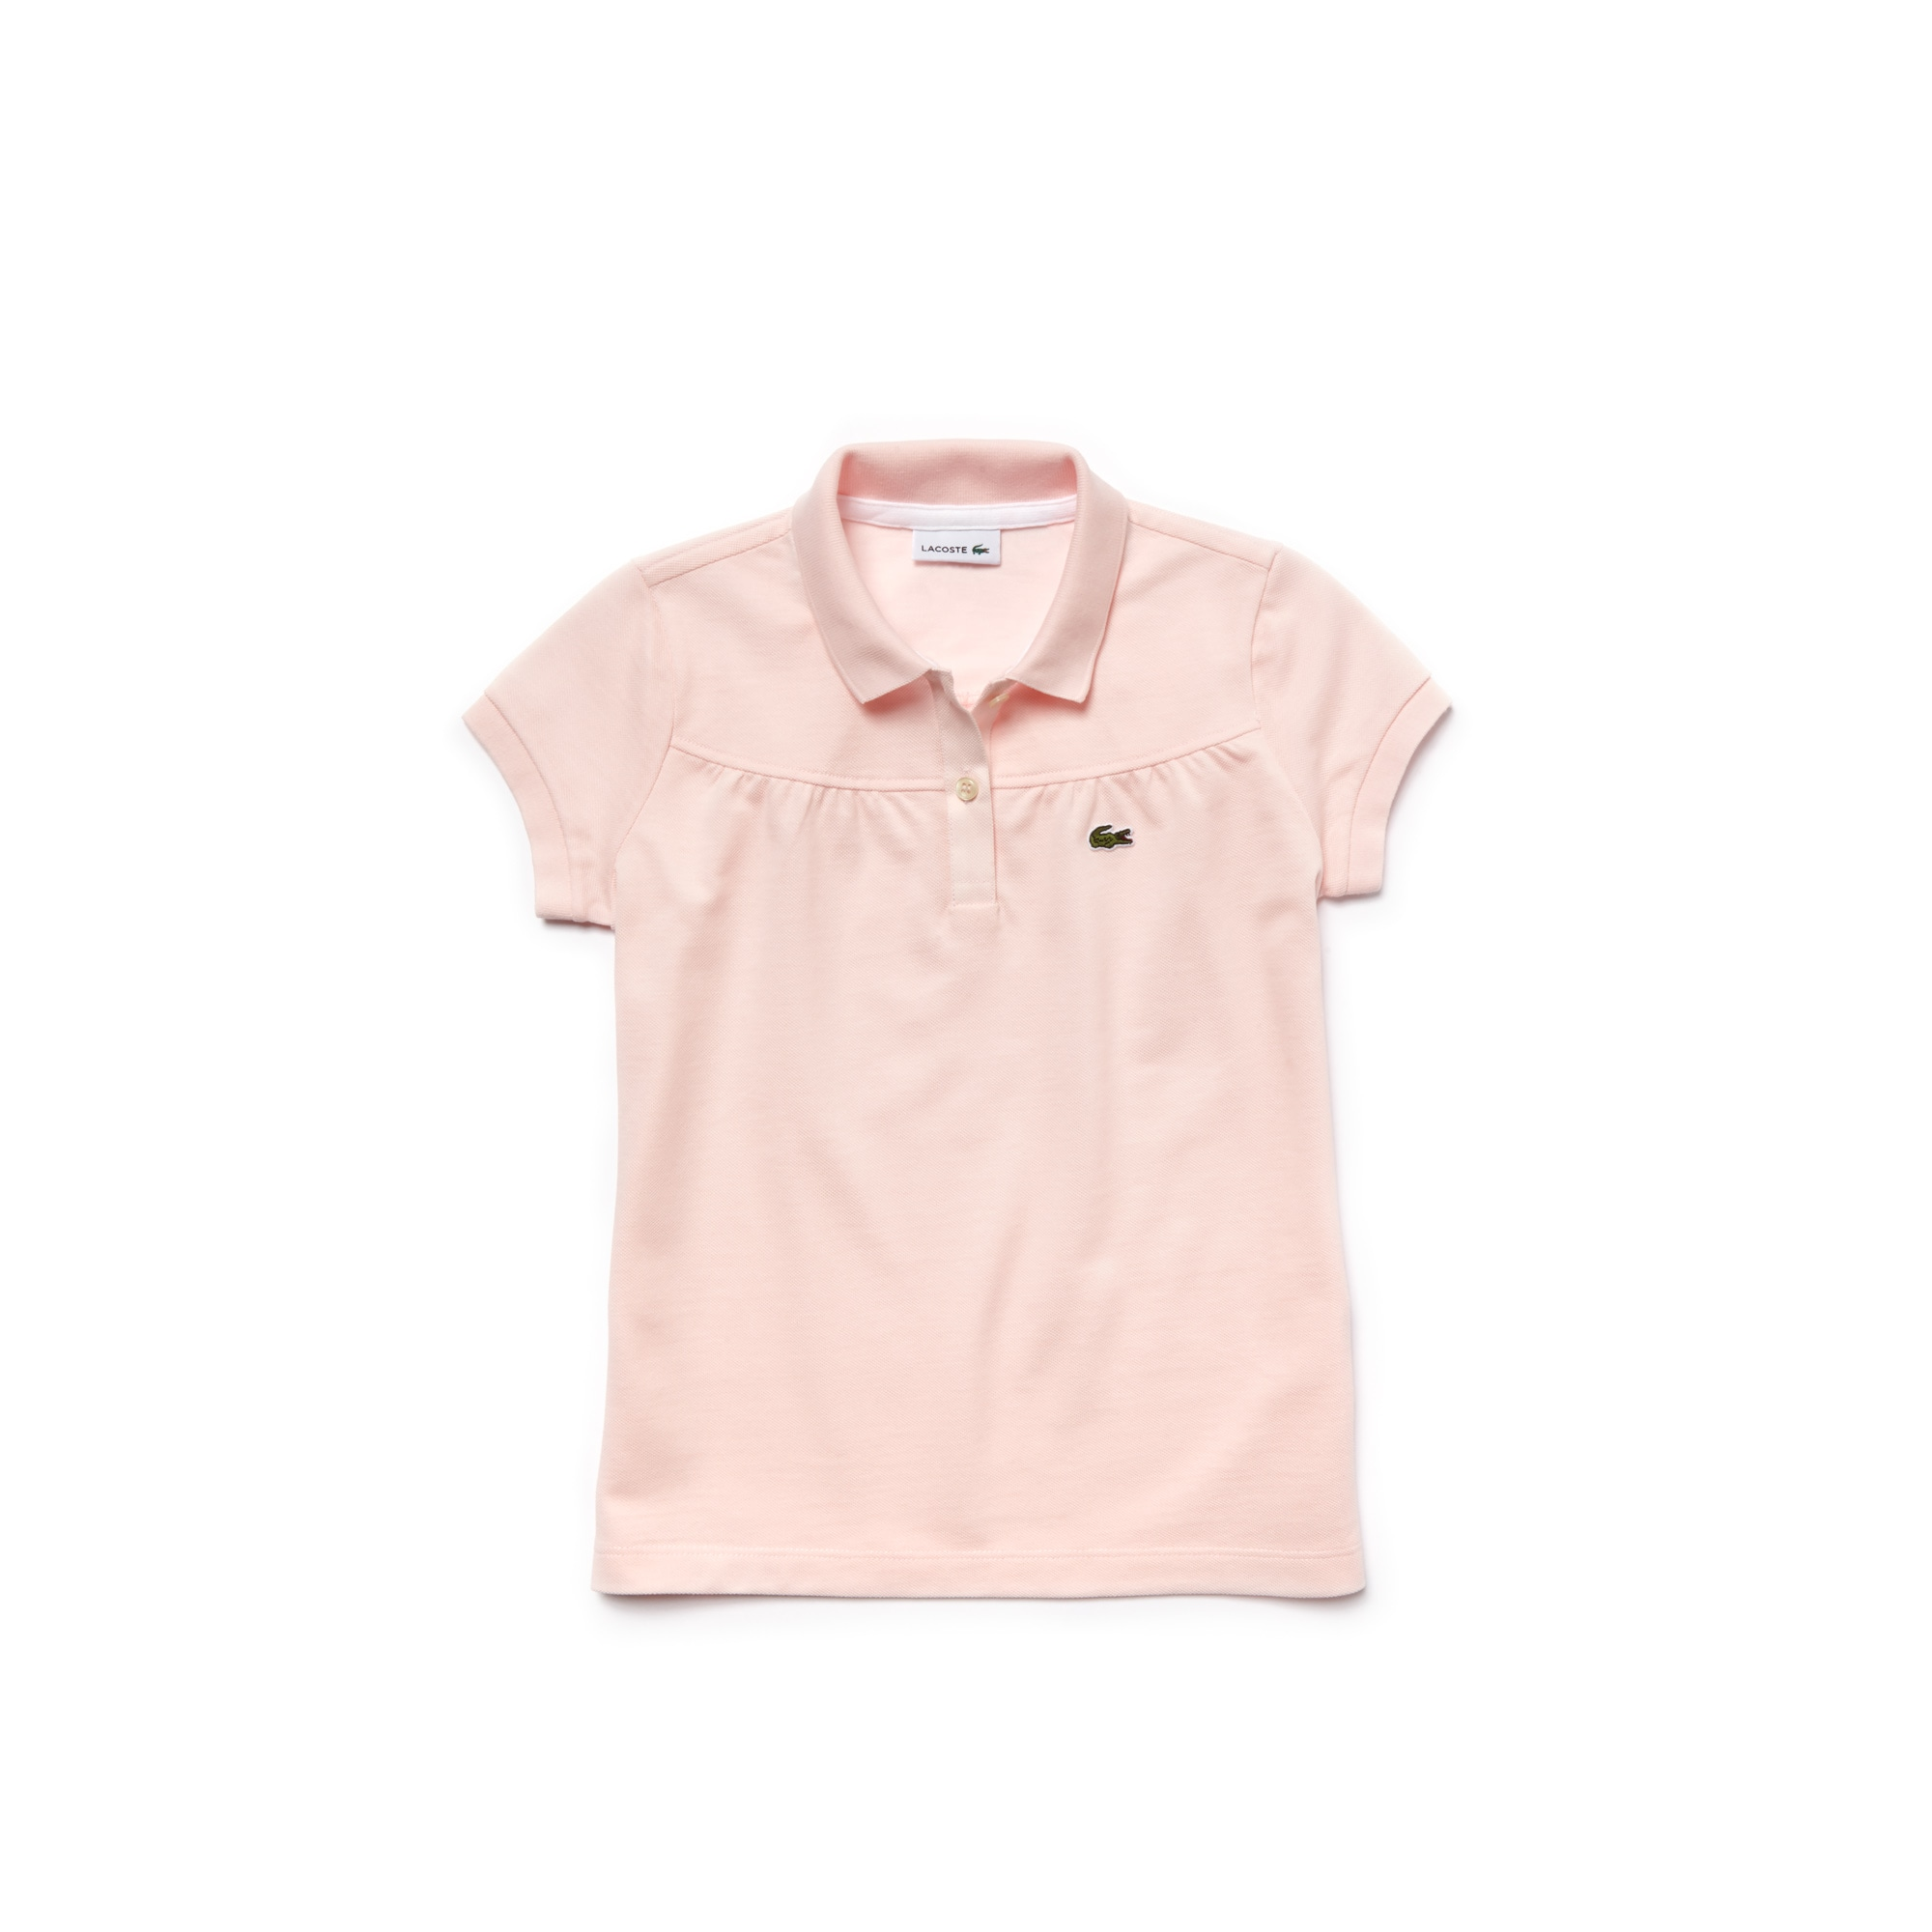 Kids Lacoste Polo Shirt in gathered mini piqué